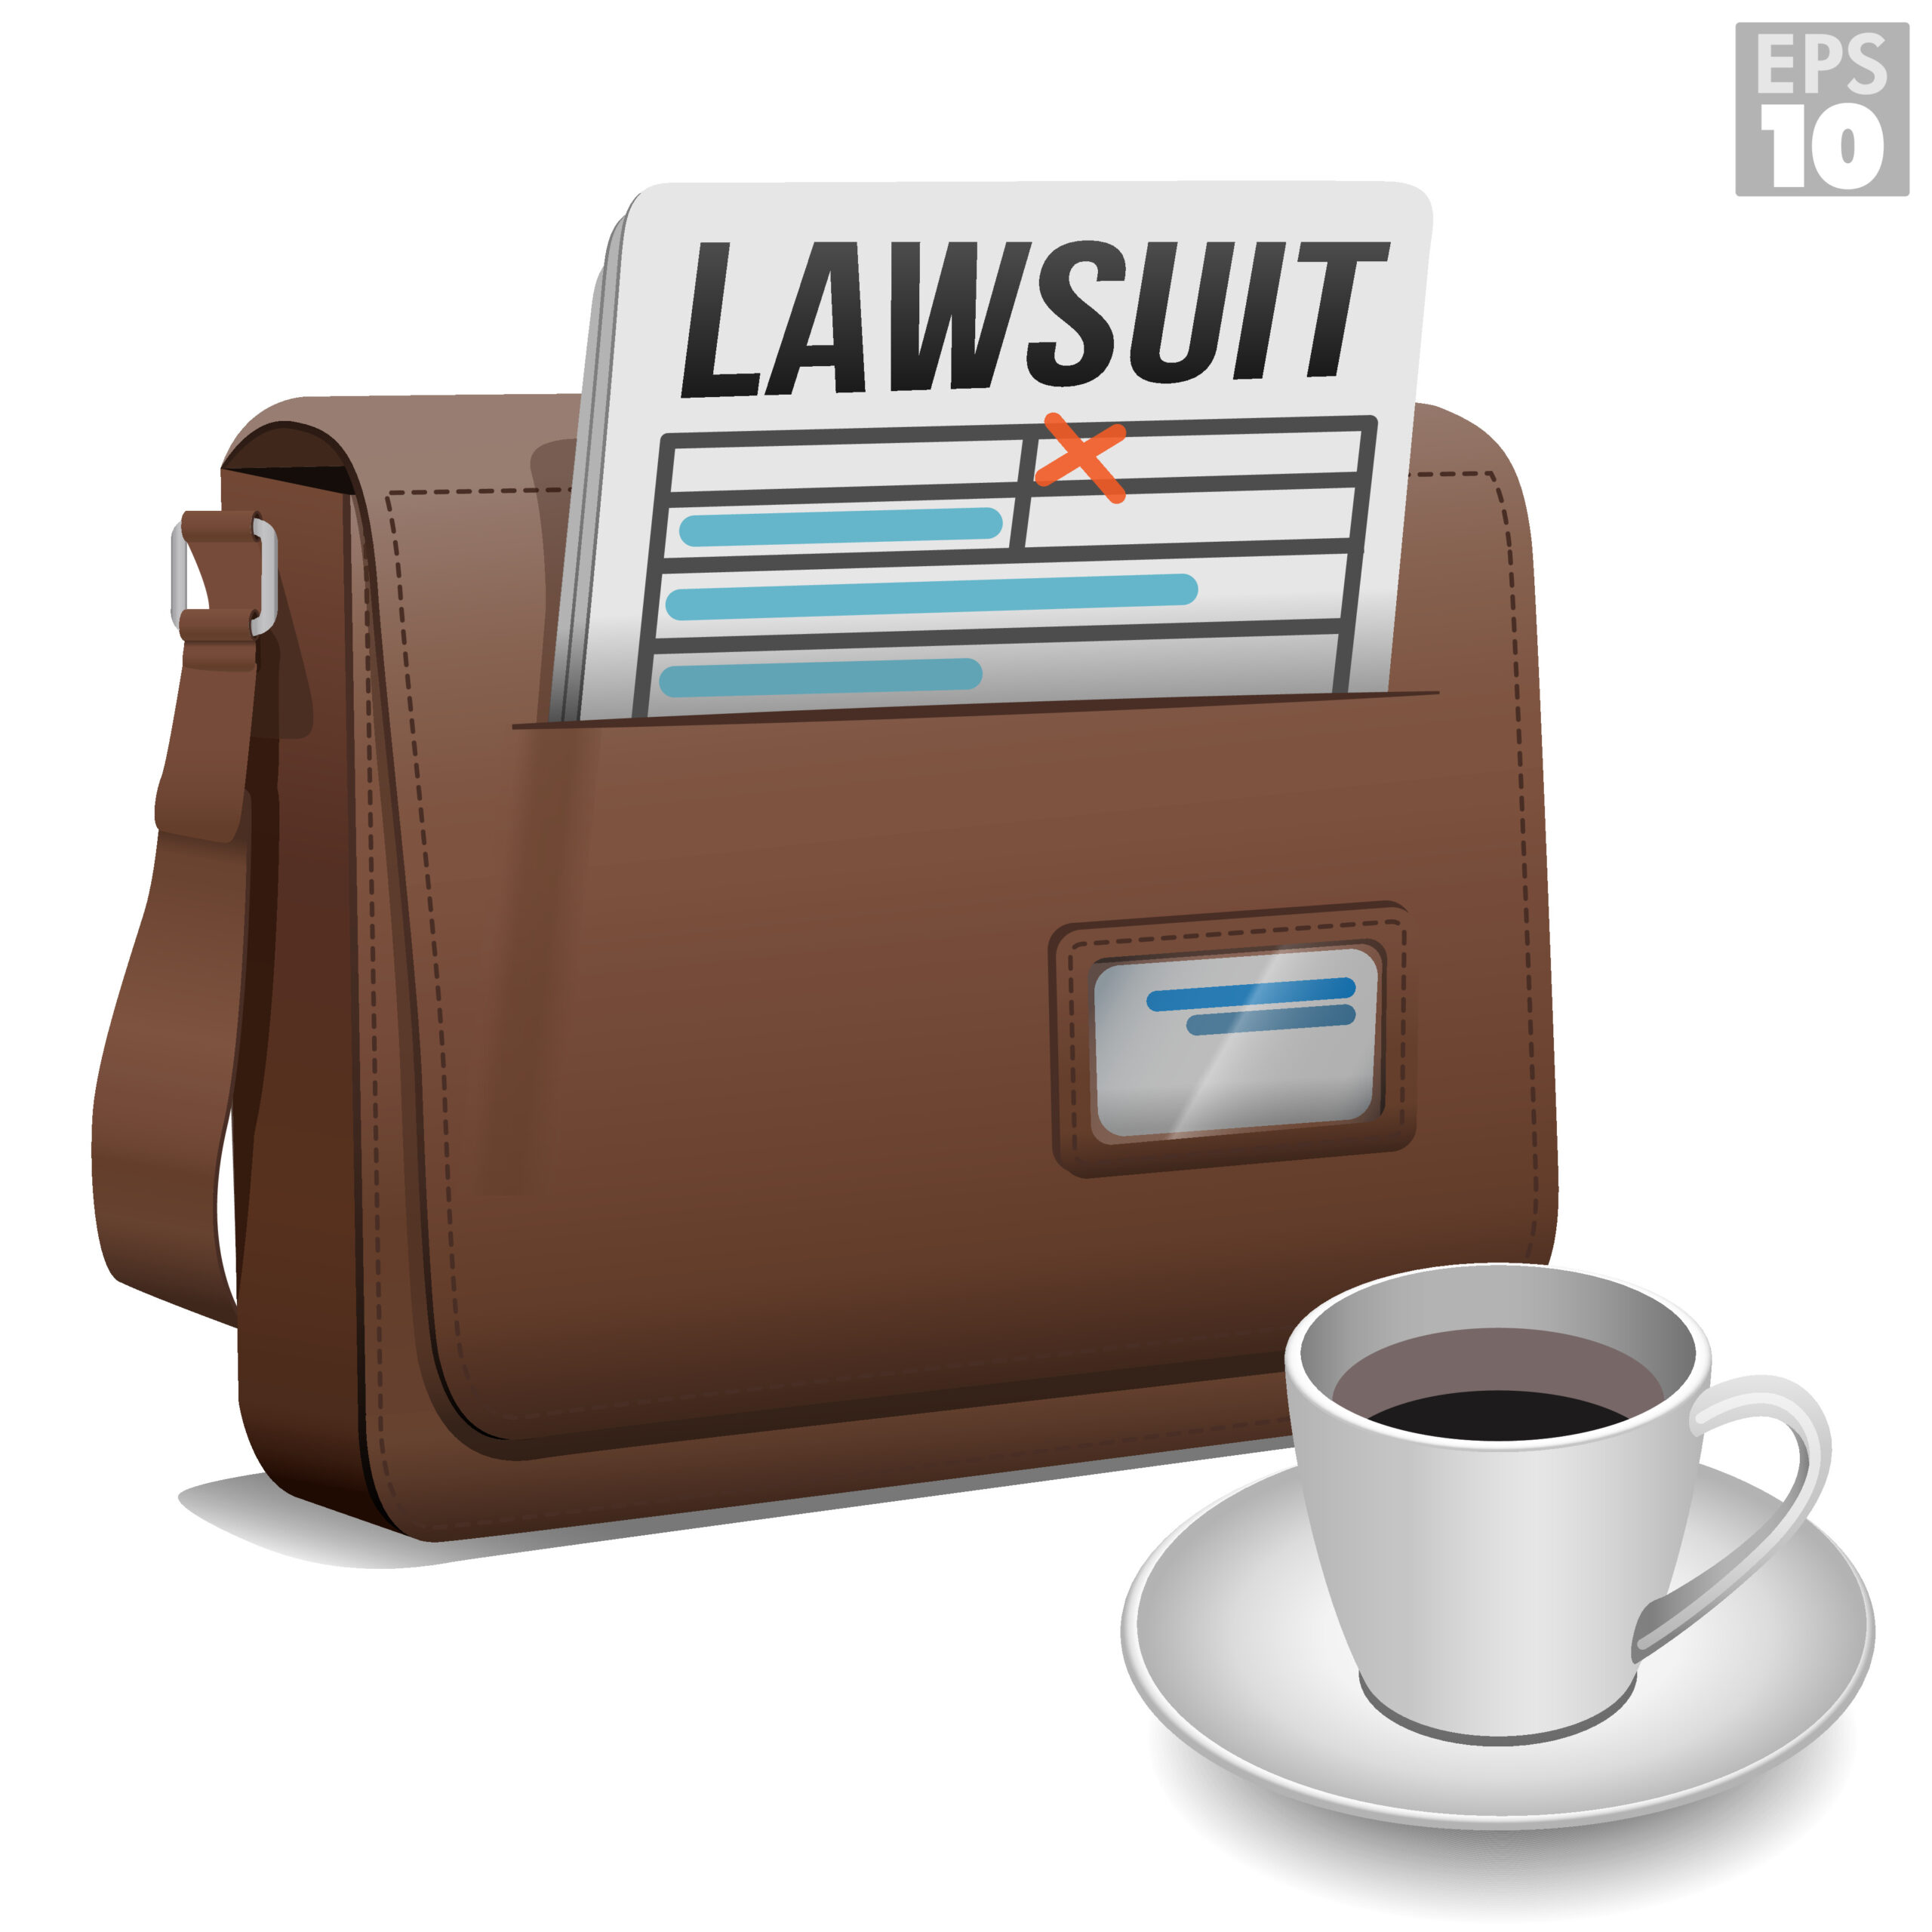 Following legal proceedings for a business lawsuit with cup of coffee to stay calm or relaxed and leather messenger bag.